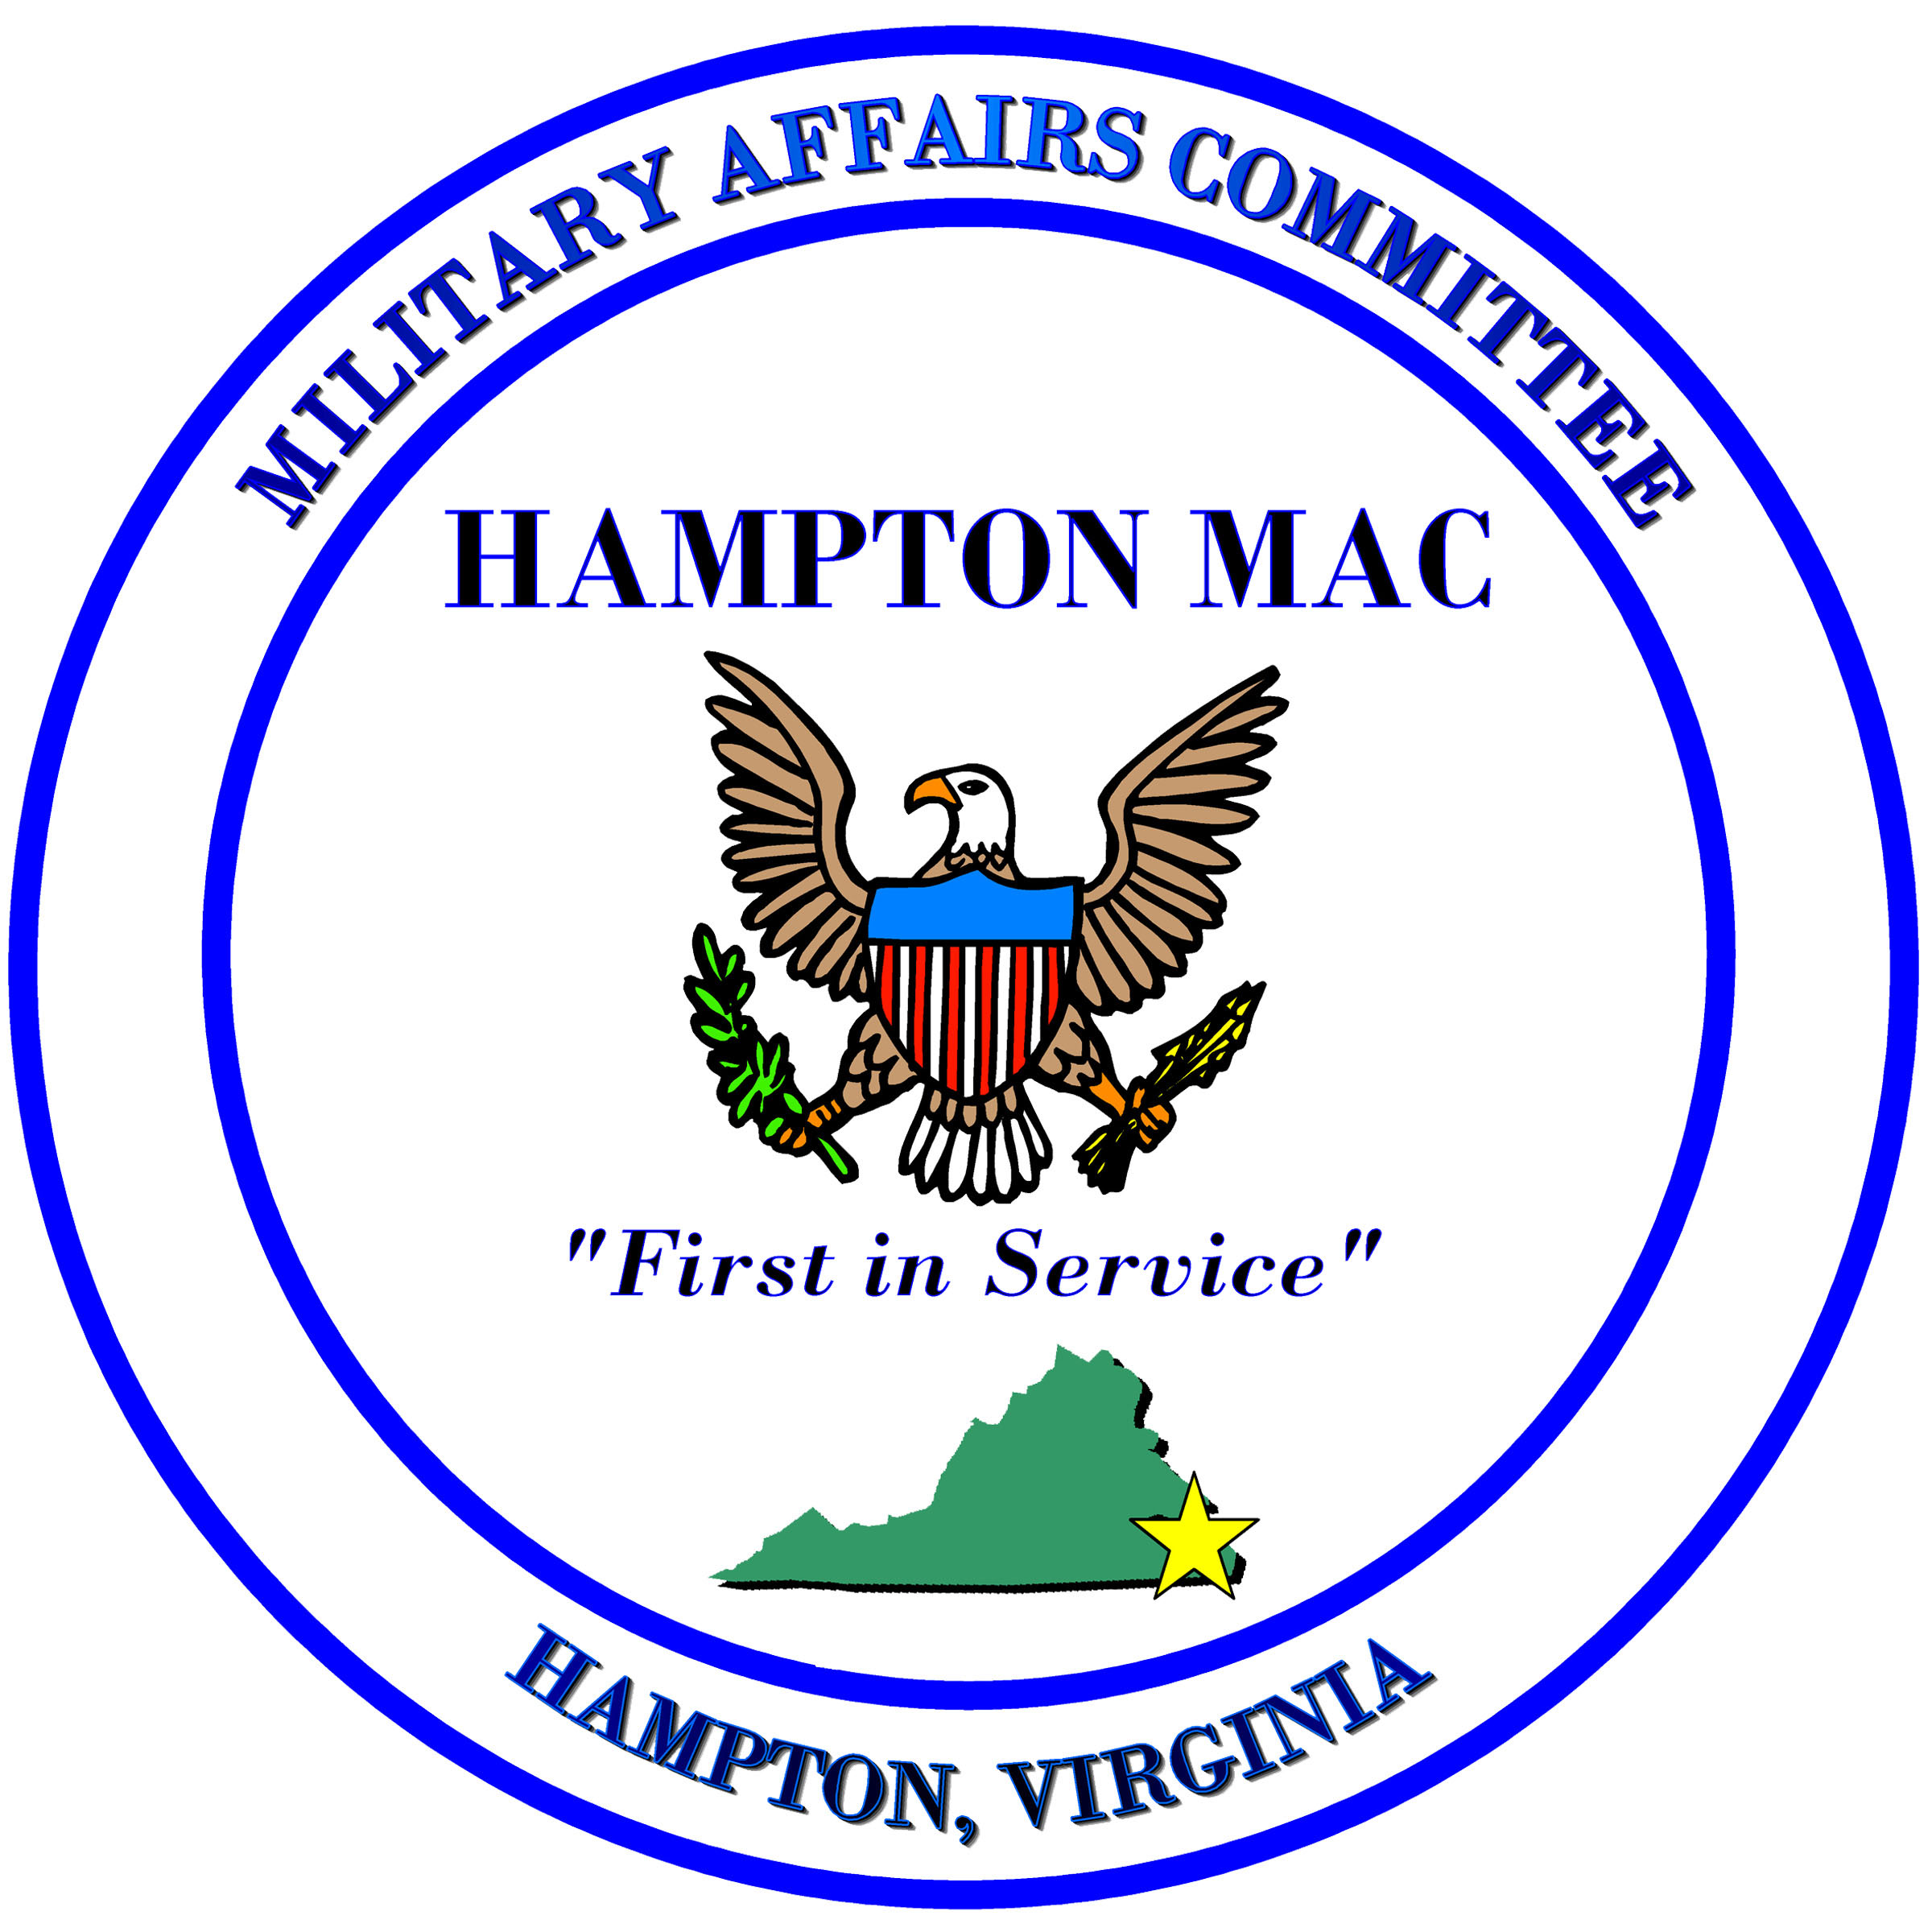 Hampton Military Affairs Committee Logo